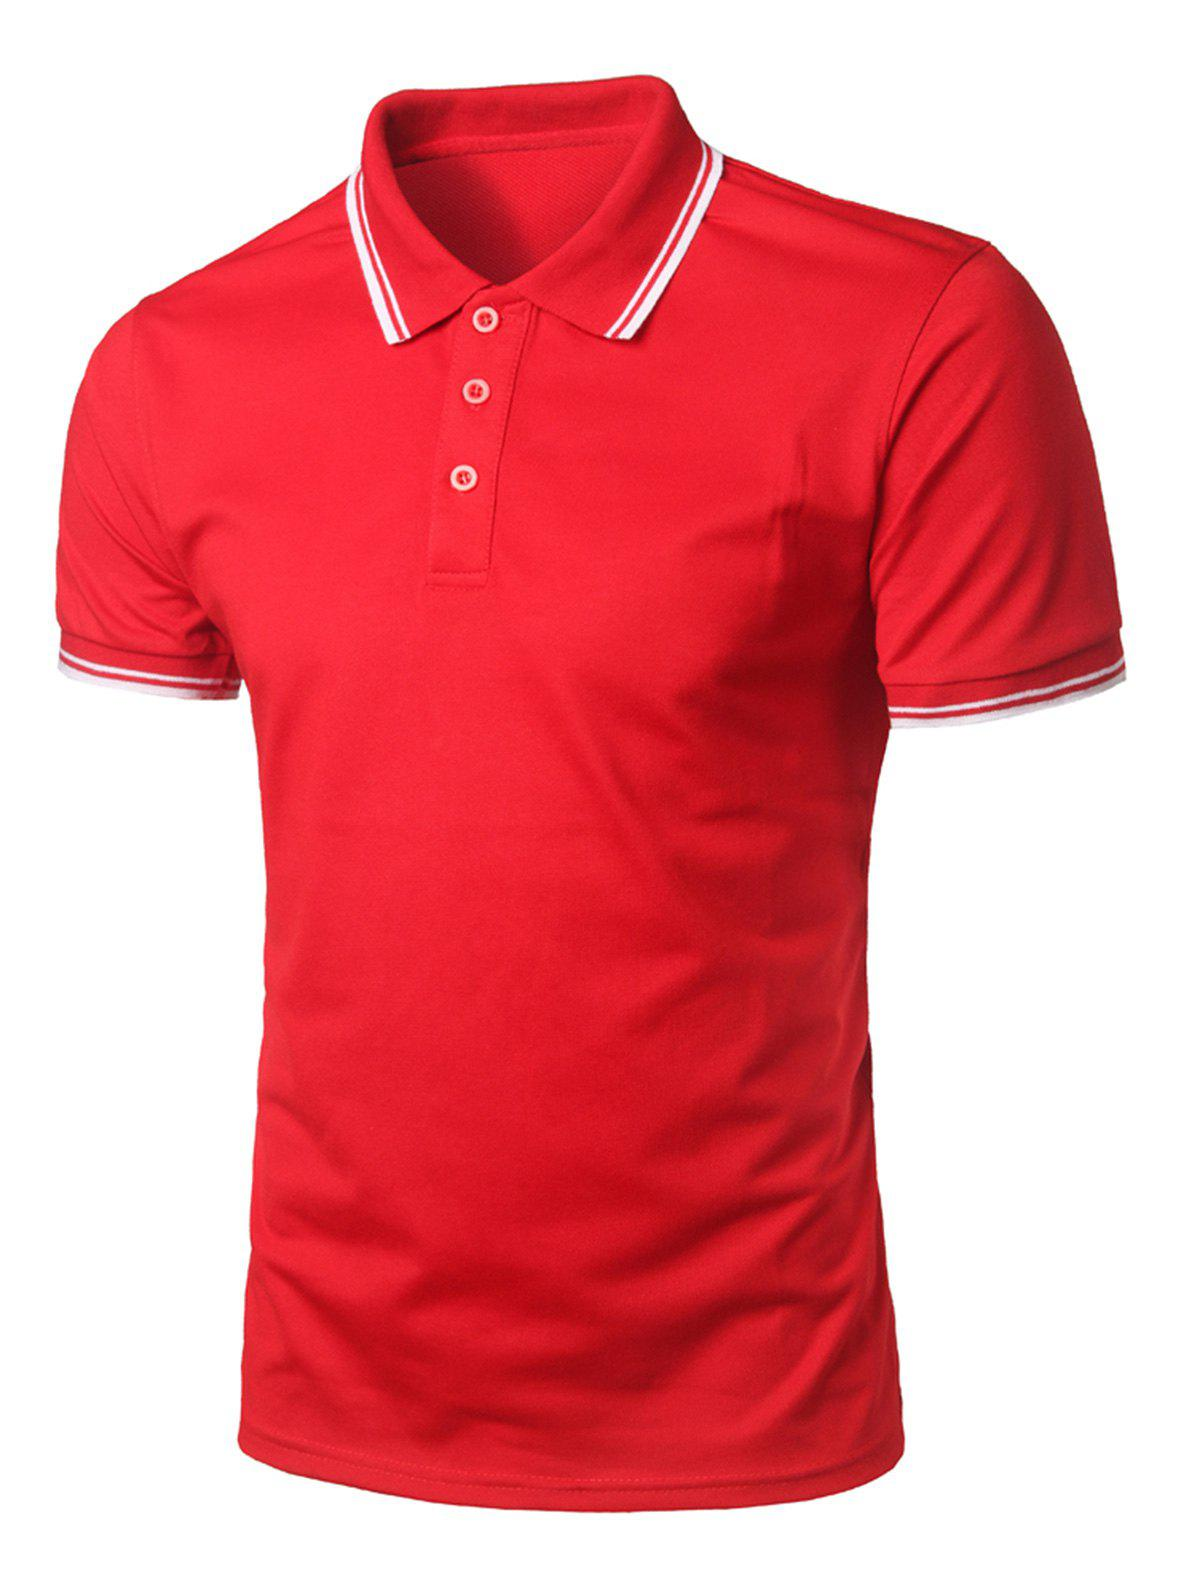 Buy Stripe Trim Half Button Casual T-shirt